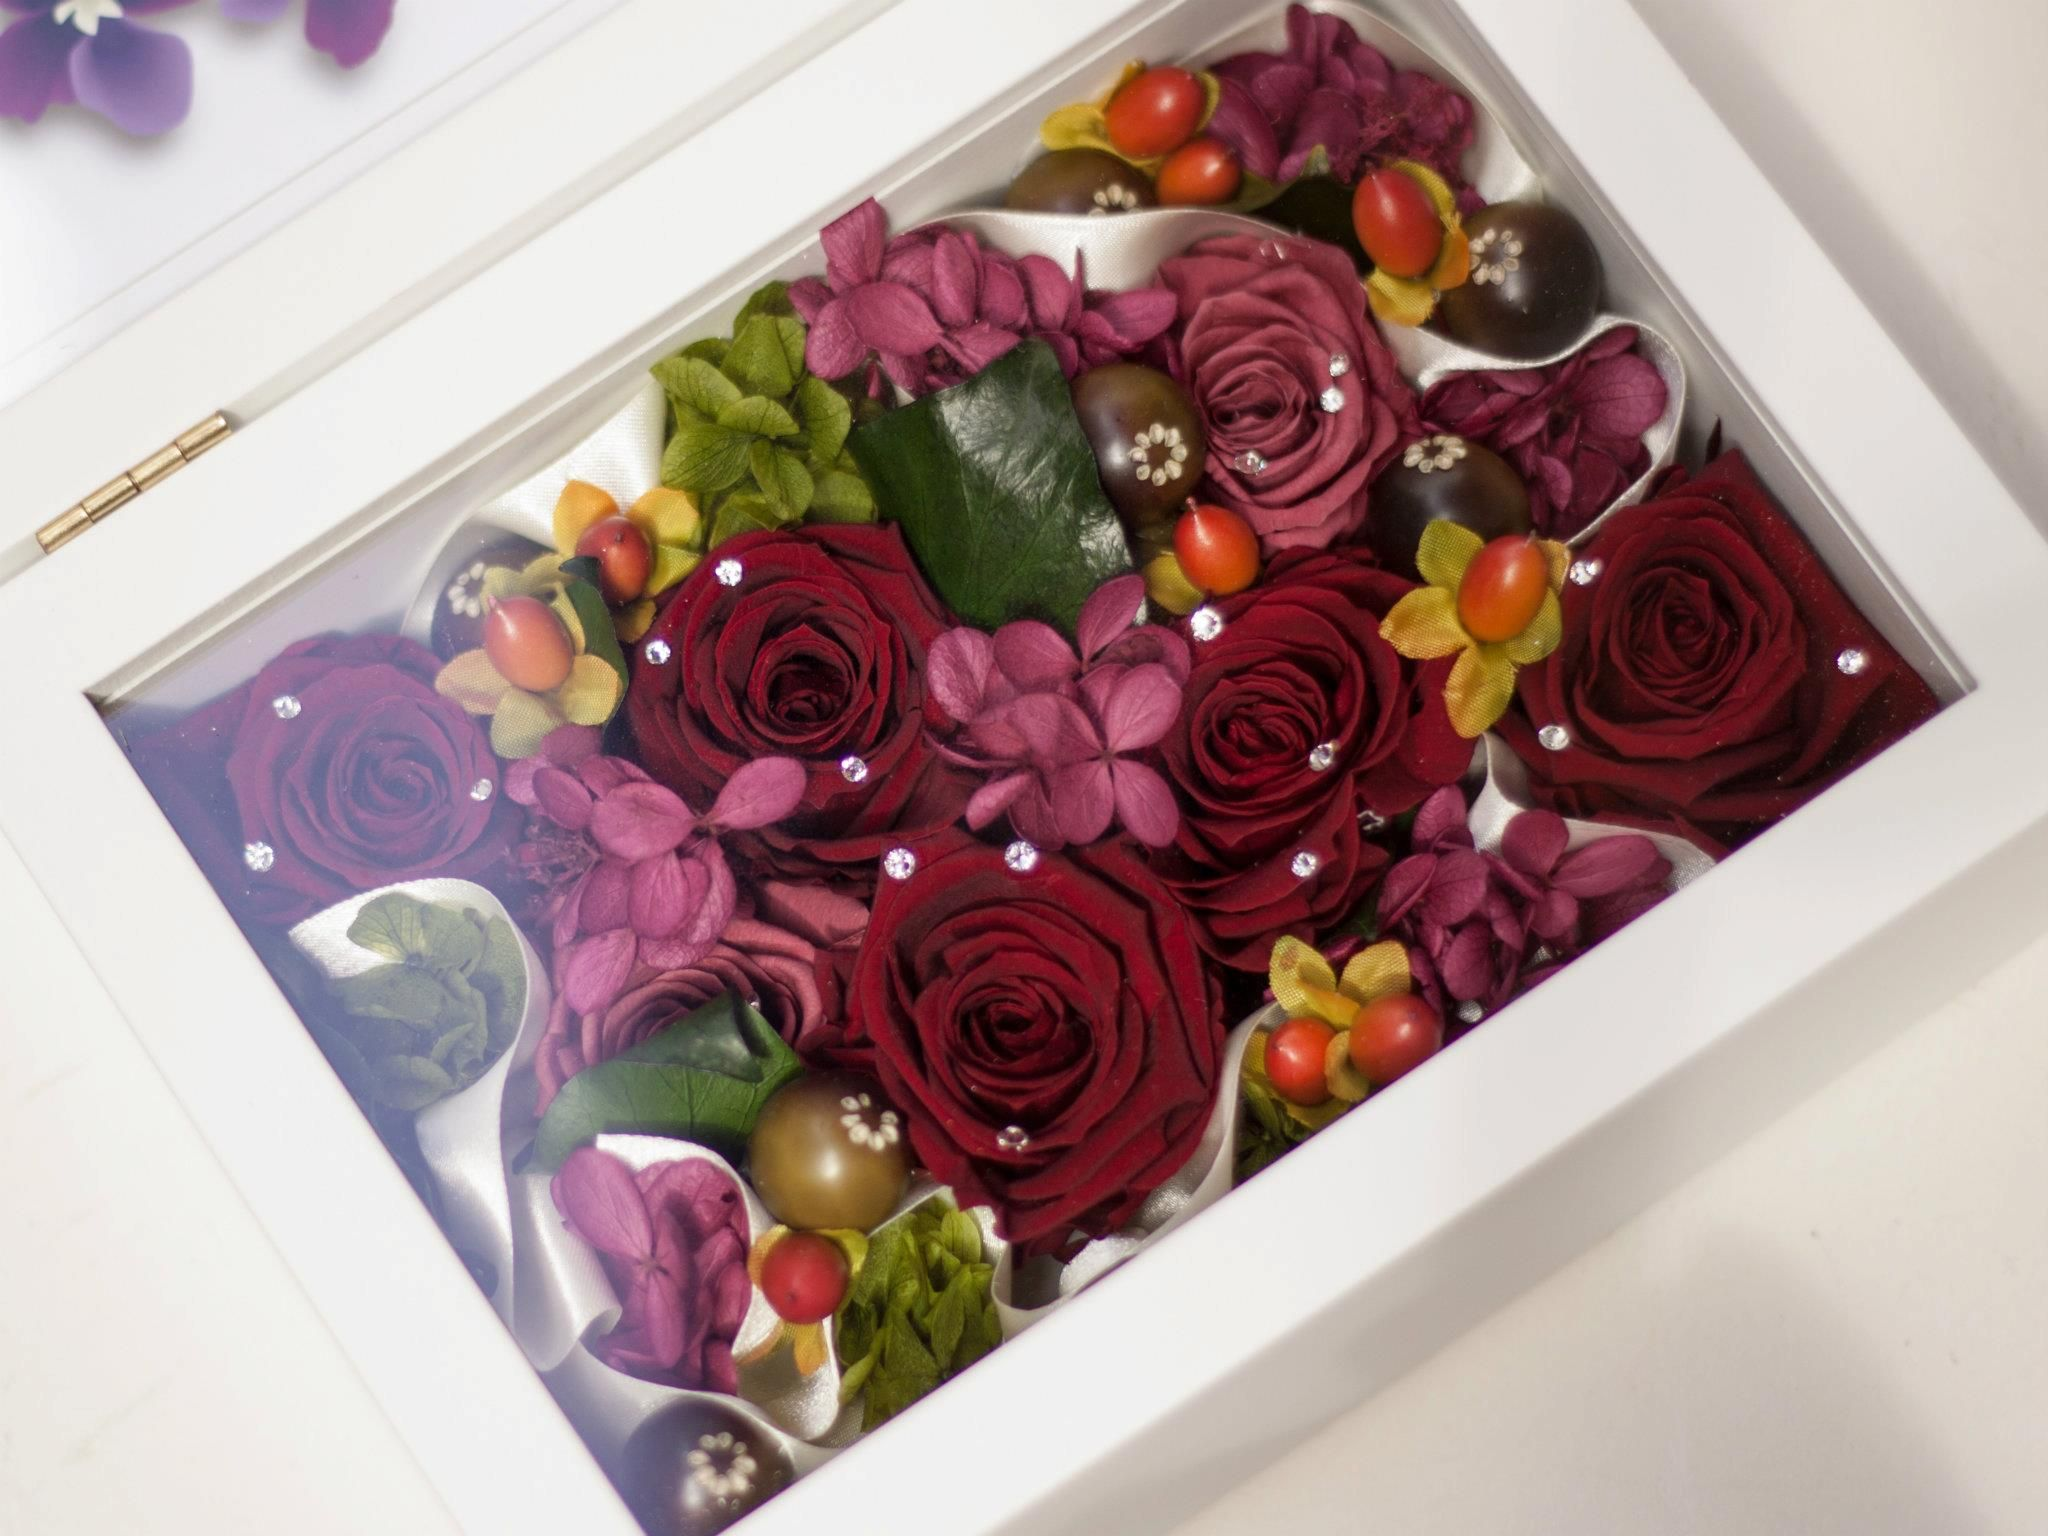 Pin By Mary Ladisich On Ideas Misc How To Preserve Flowers Flower Petals Easy Crafts